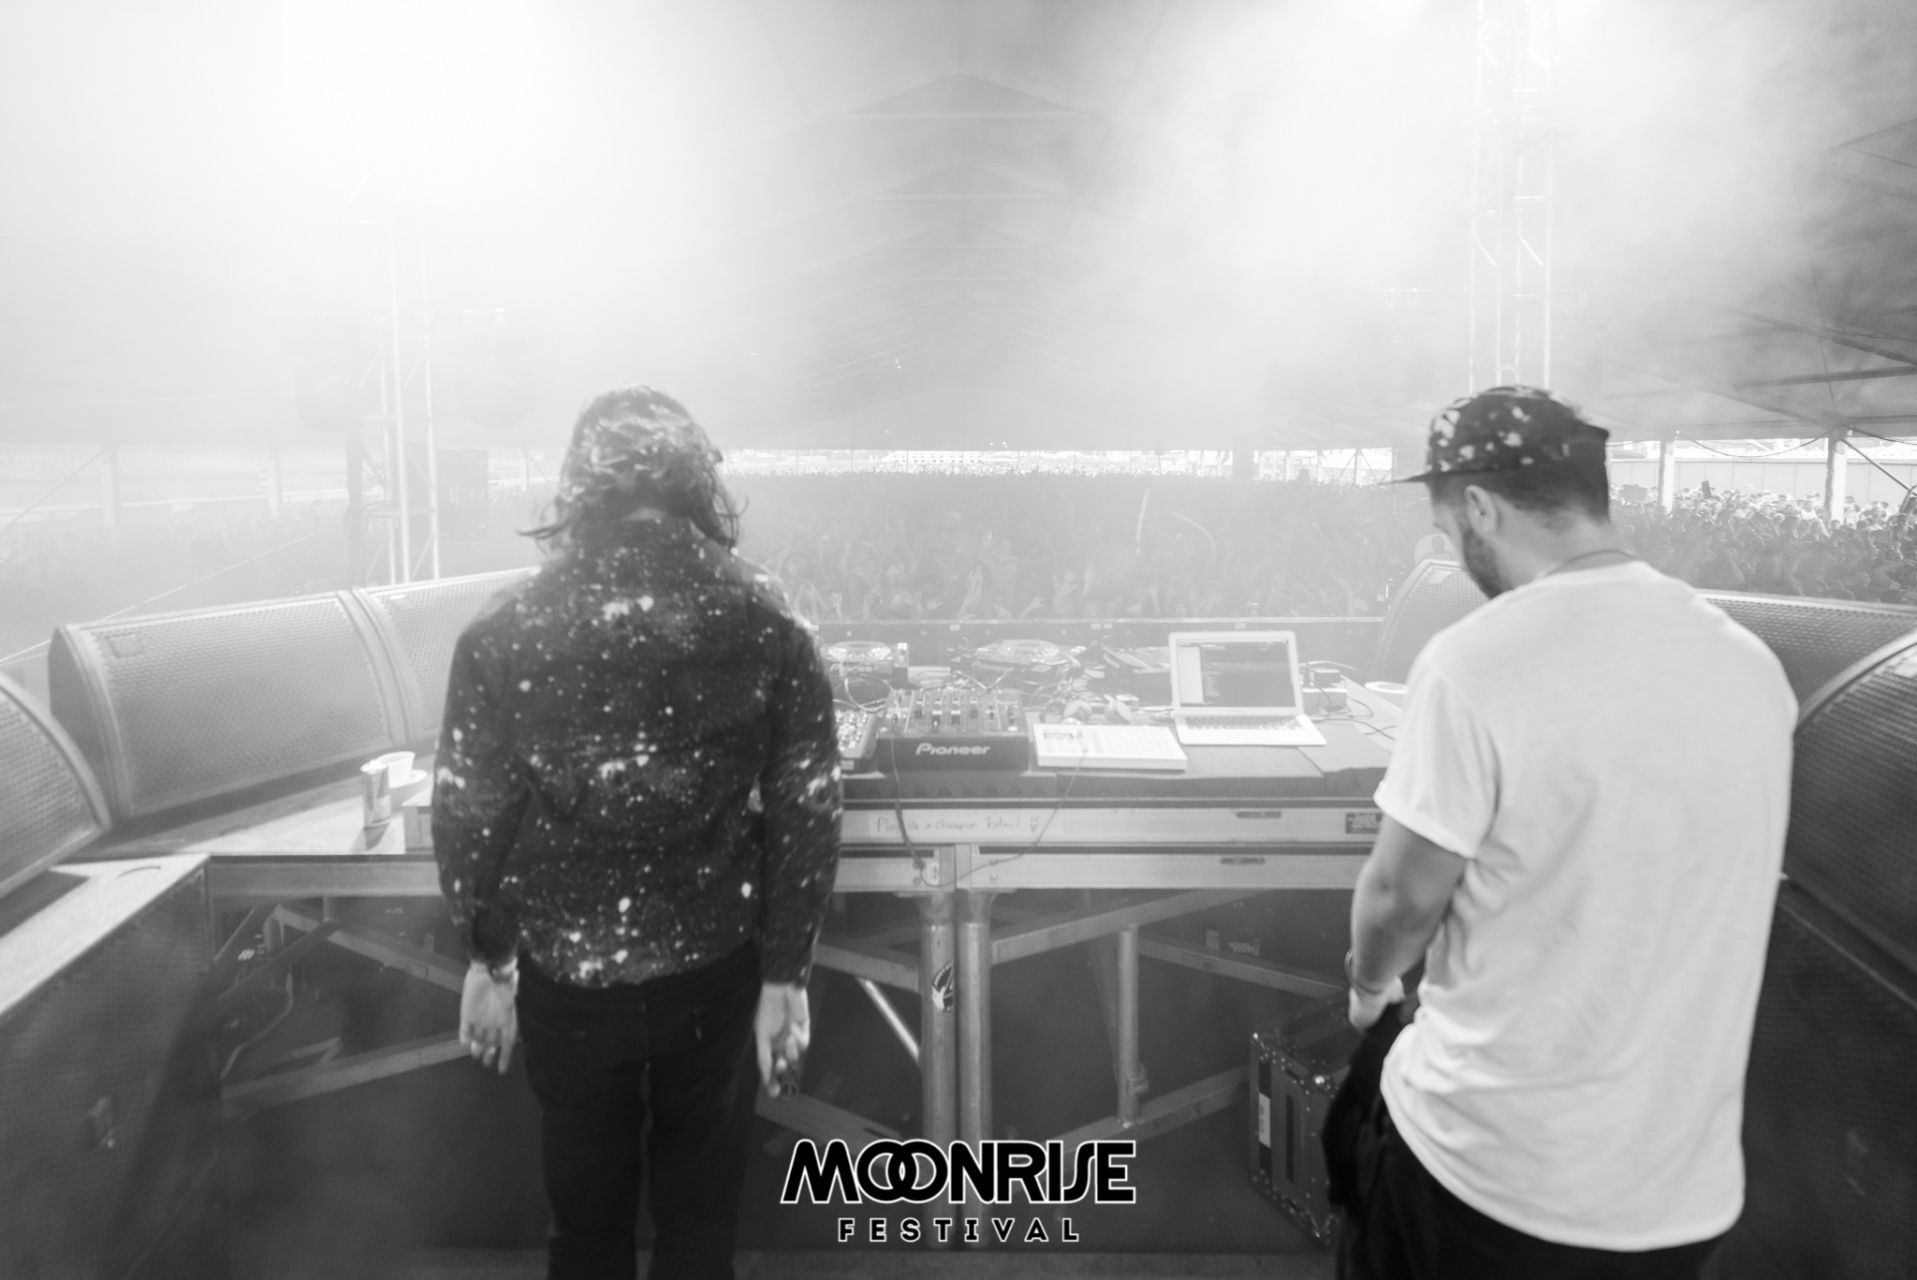 Moonrise_day2-92